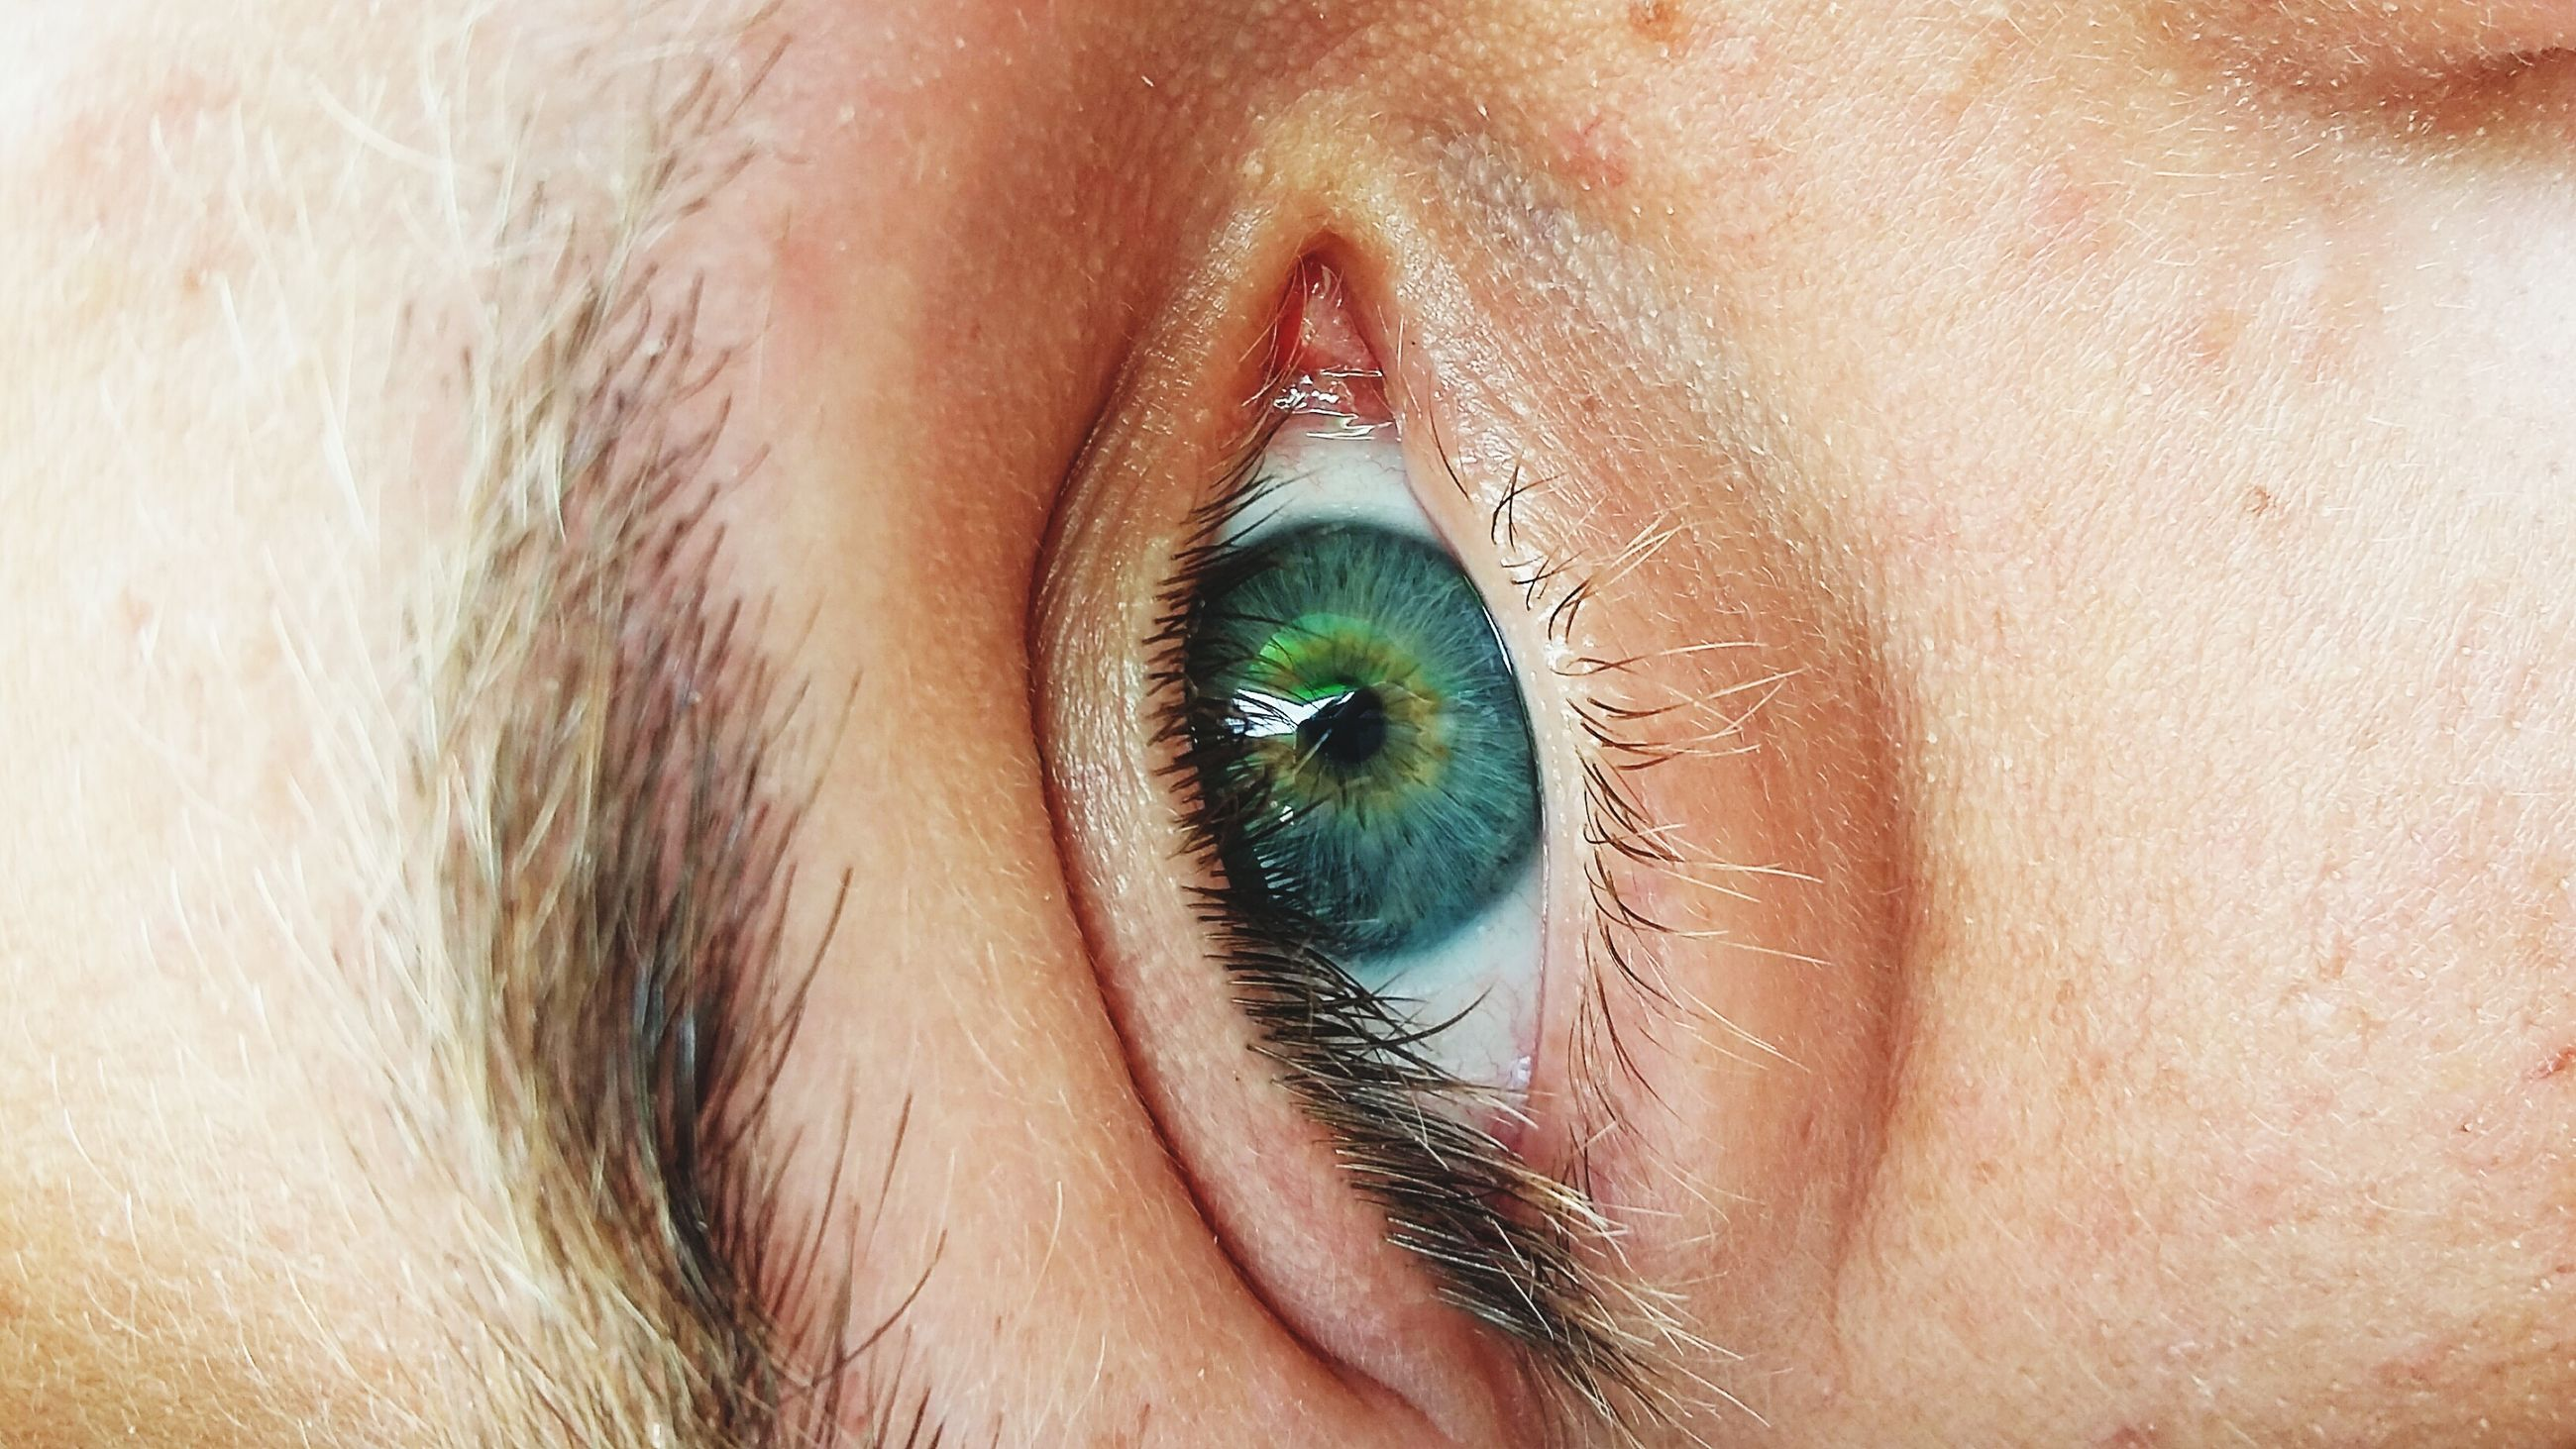 part of, close-up, cropped, person, human skin, unrecognizable person, lifestyles, human eye, leisure activity, detail, focus on foreground, selective focus, eyelash, extreme close-up, macro, sensory perception